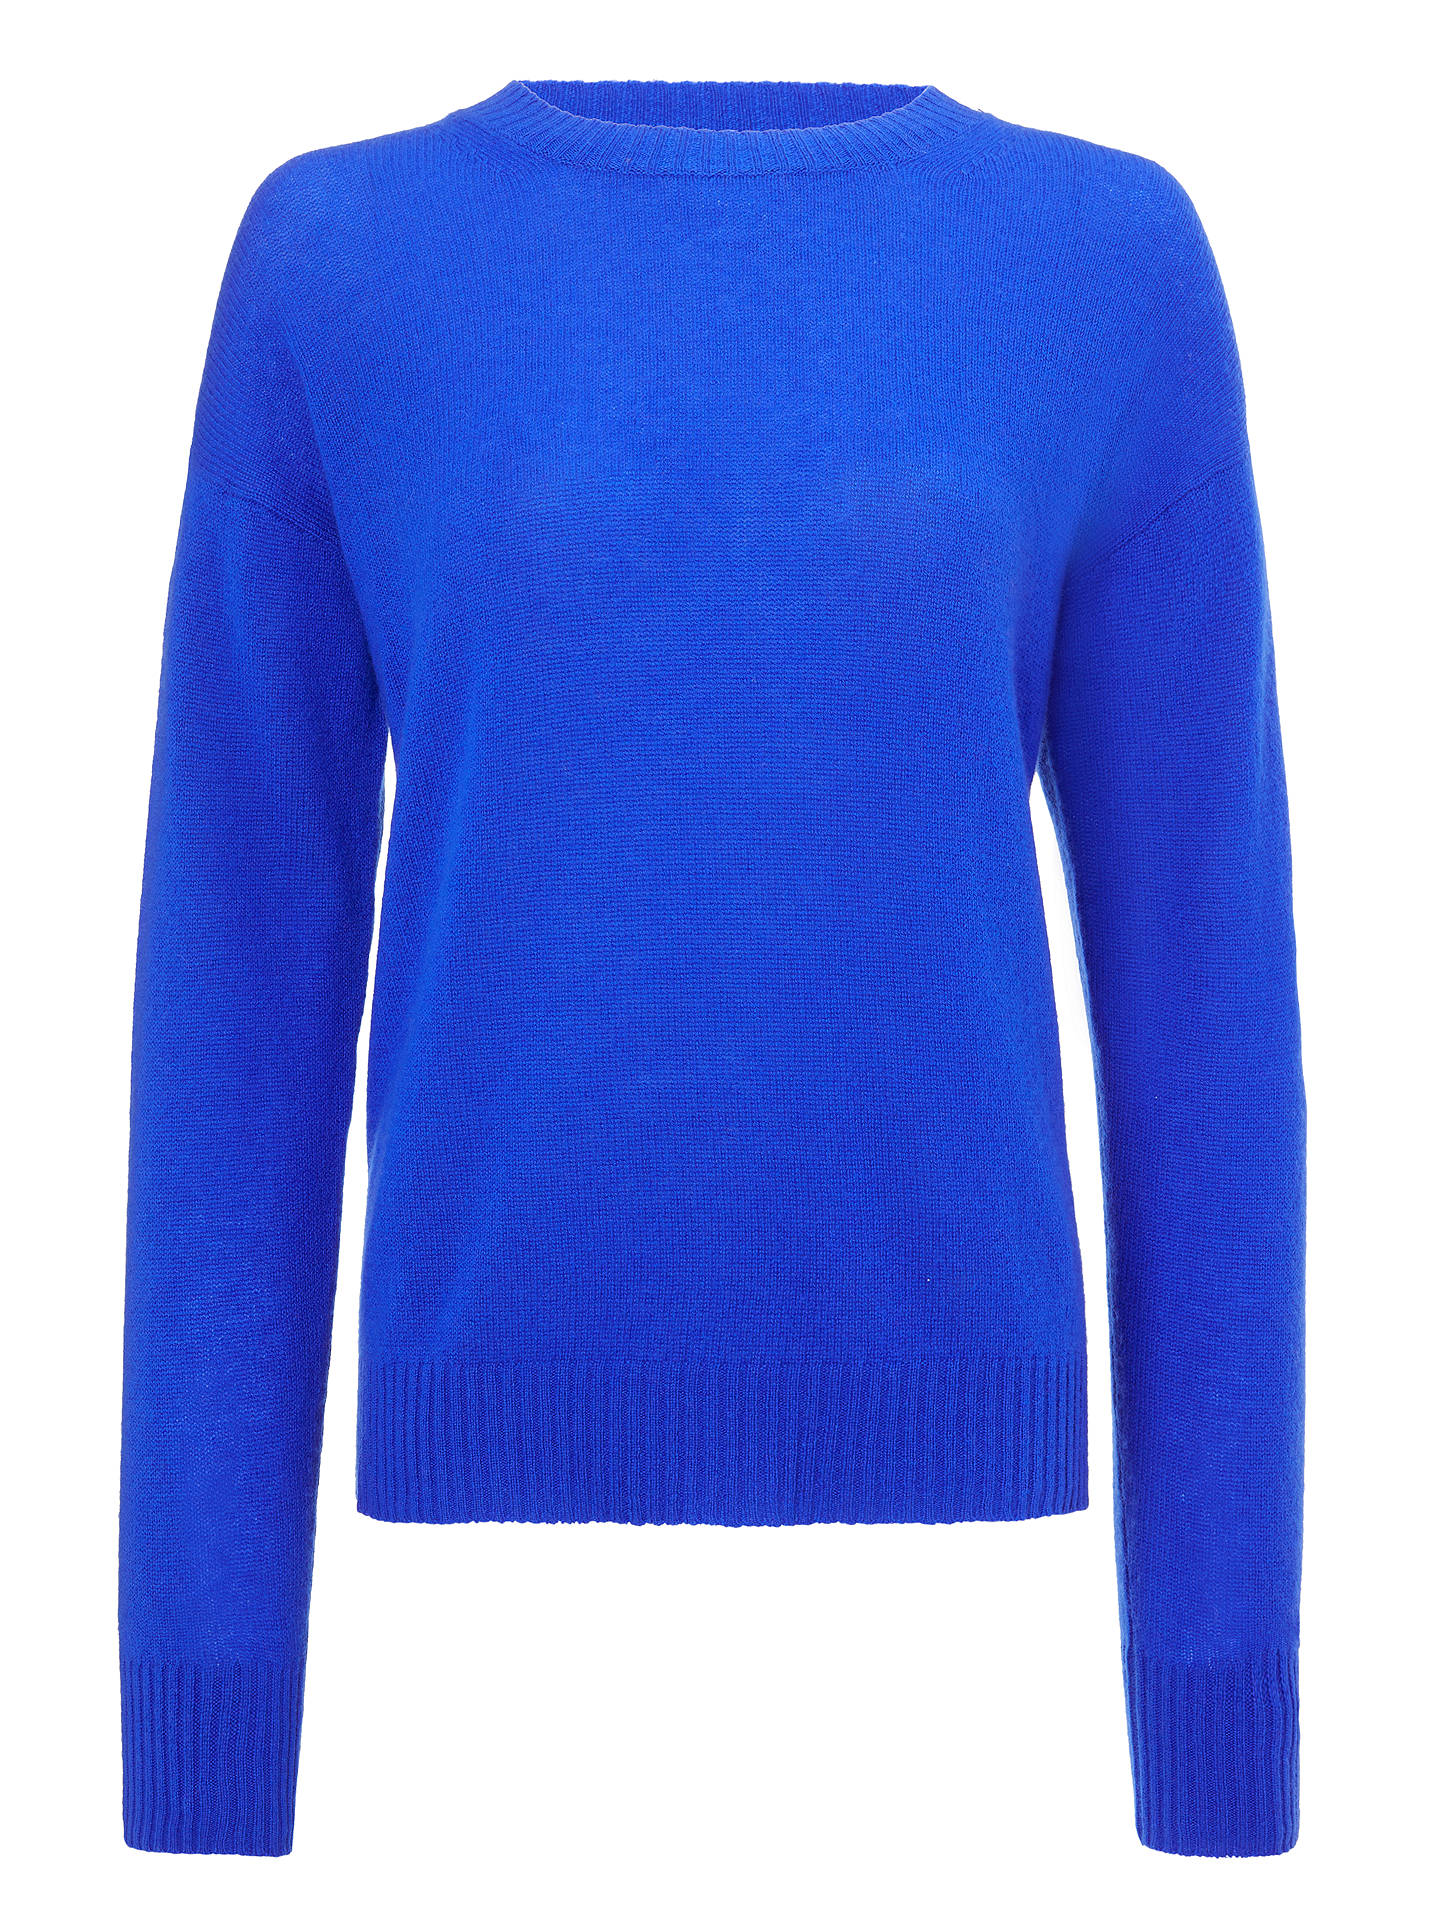 Buy 360 Sweater Oumie Cashmere Jumper, Royal Blue, L Online at johnlewis.com